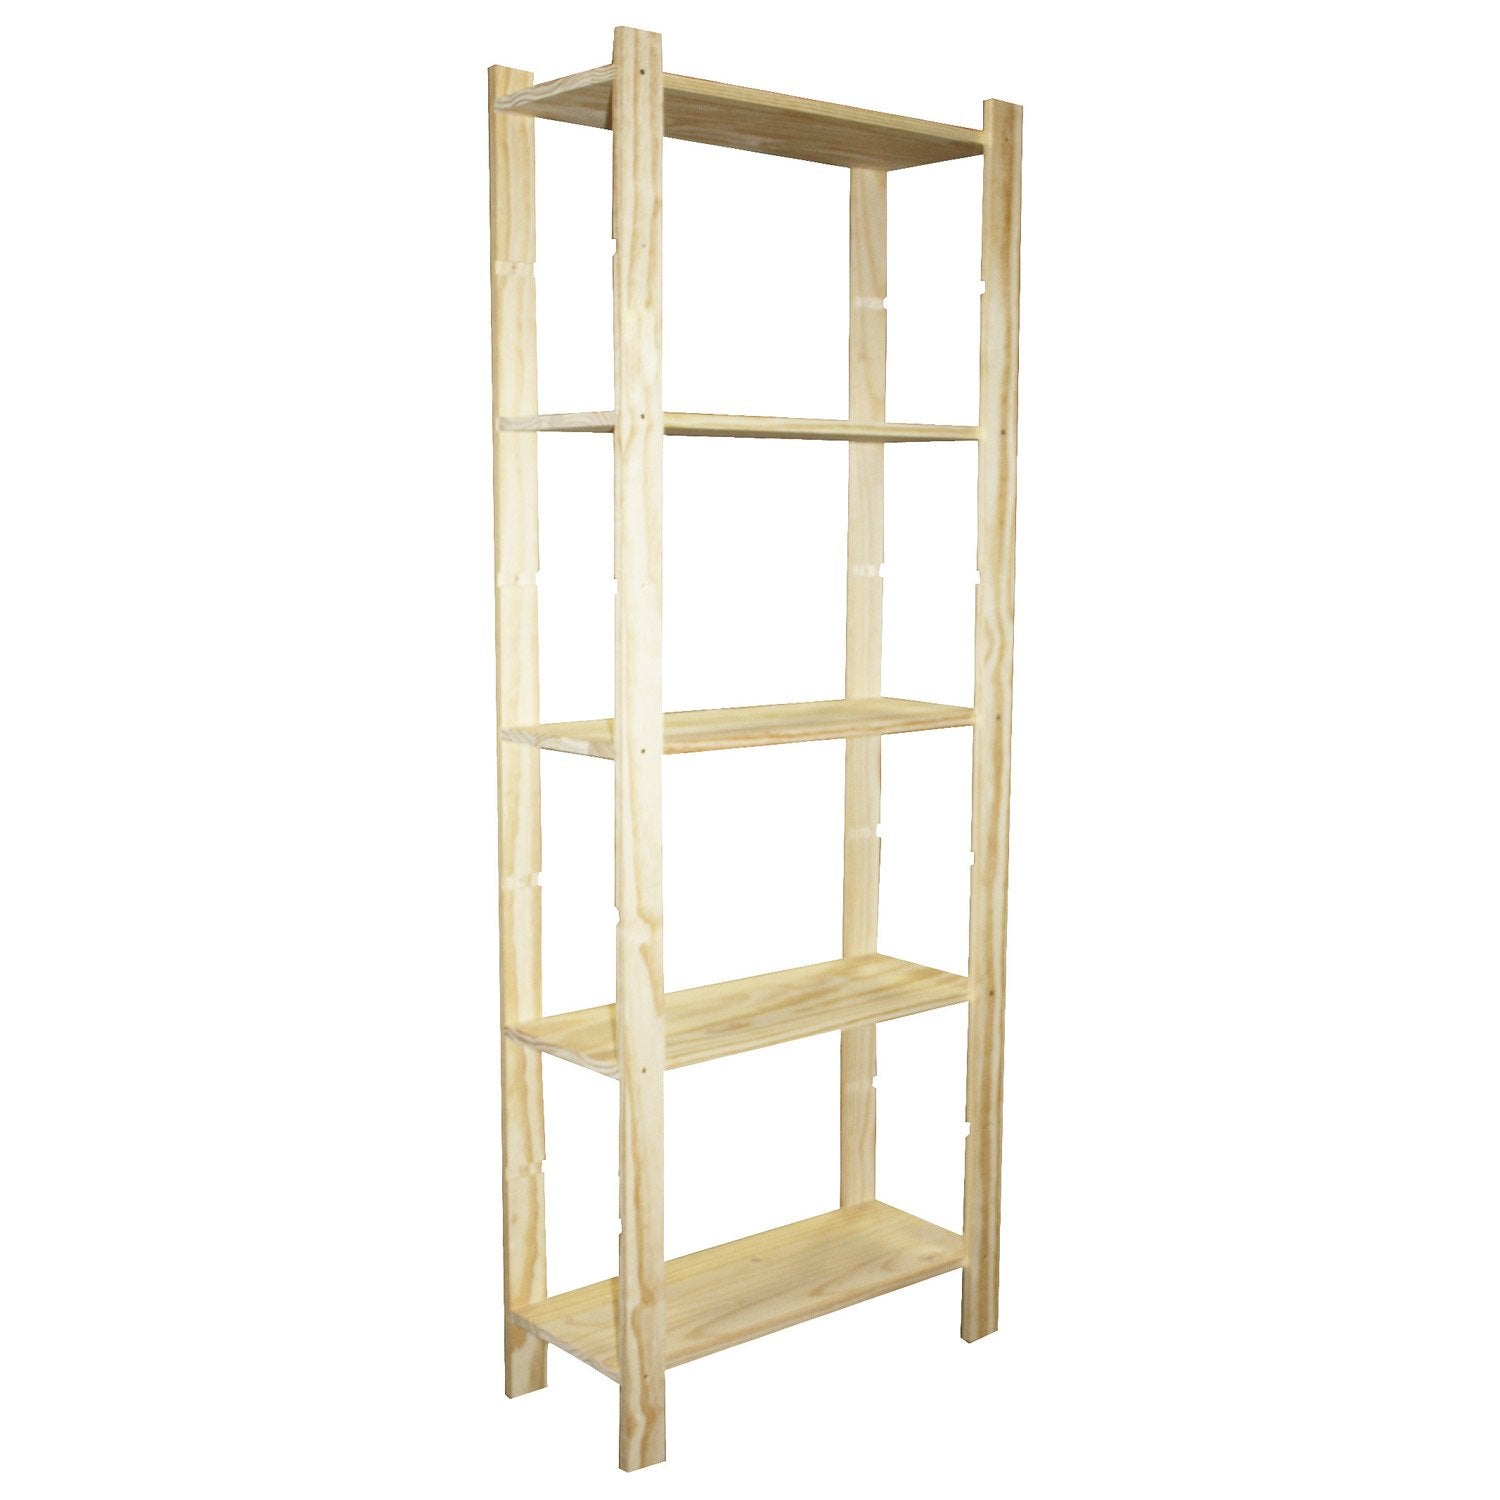 Etag re pin 5 tablettes x x cm leroy - Etagere modulable leroy merlin ...